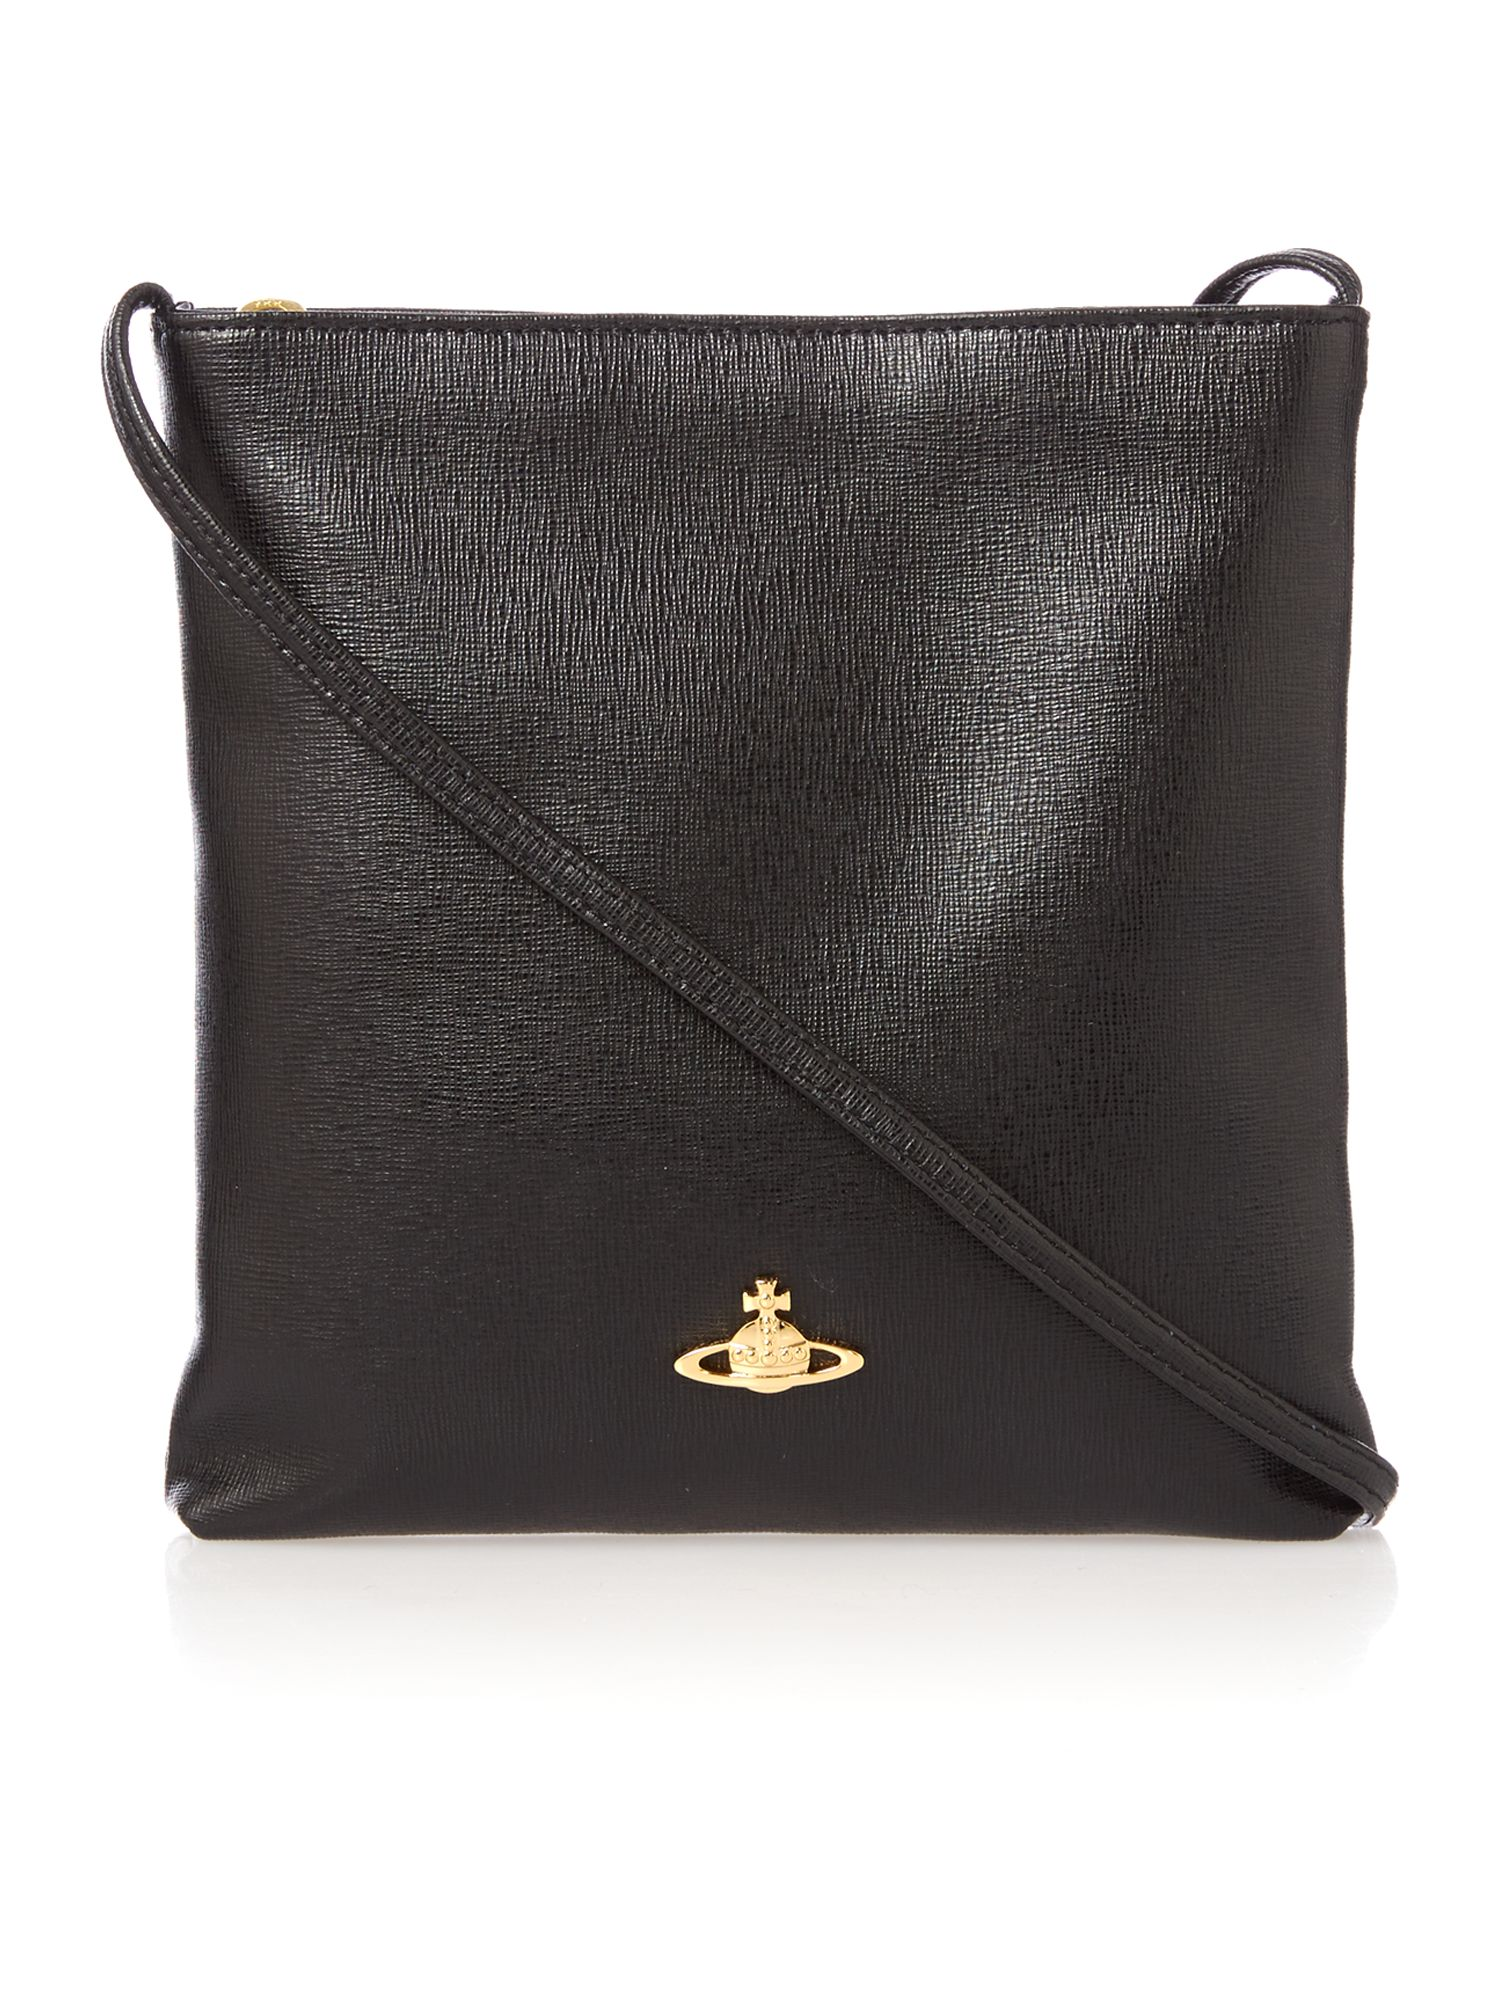 Divina black cross body bag